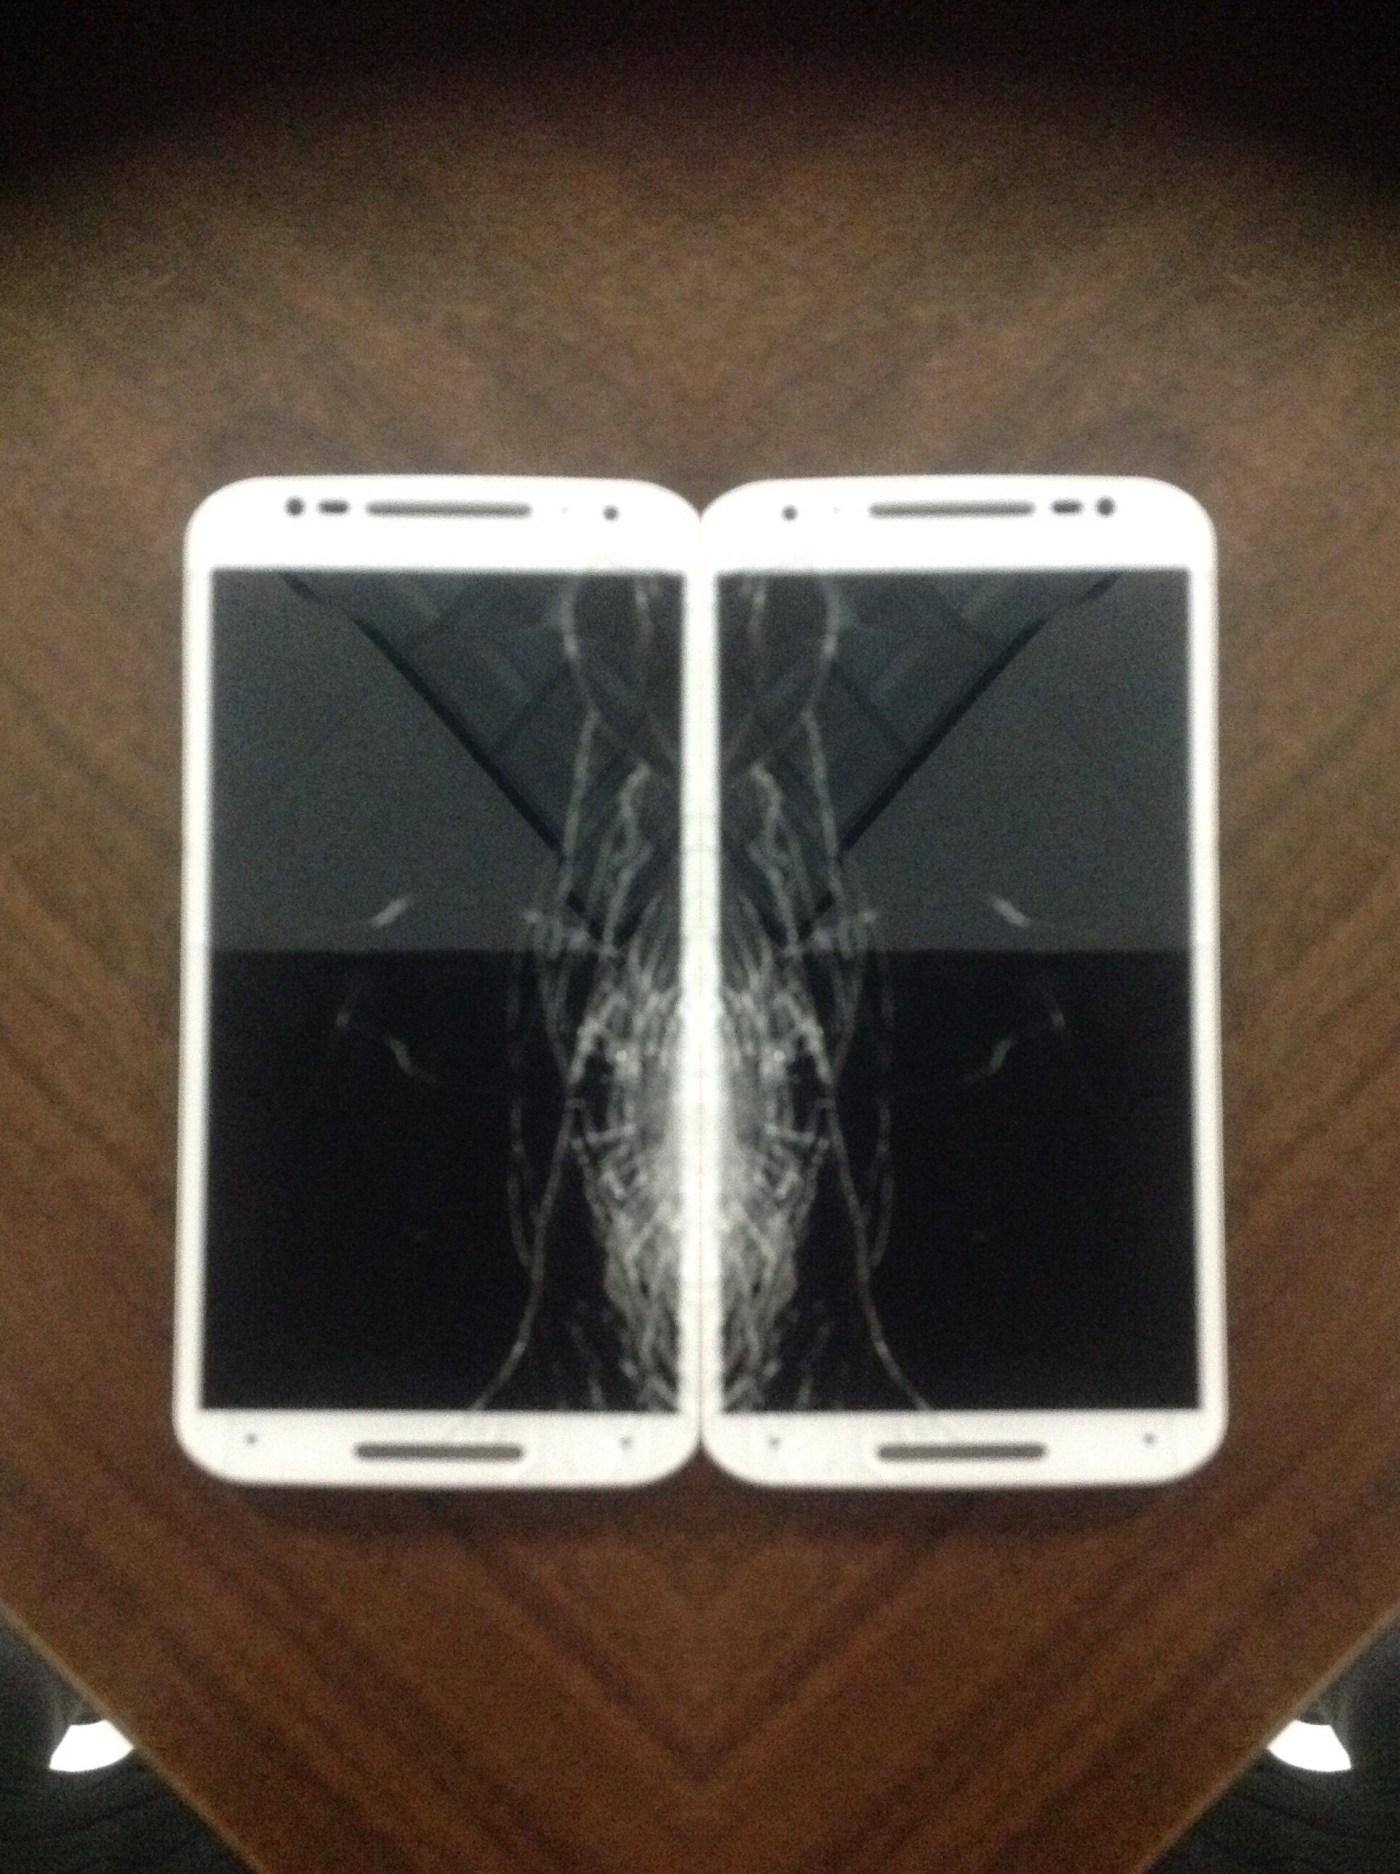 A double image of white phones